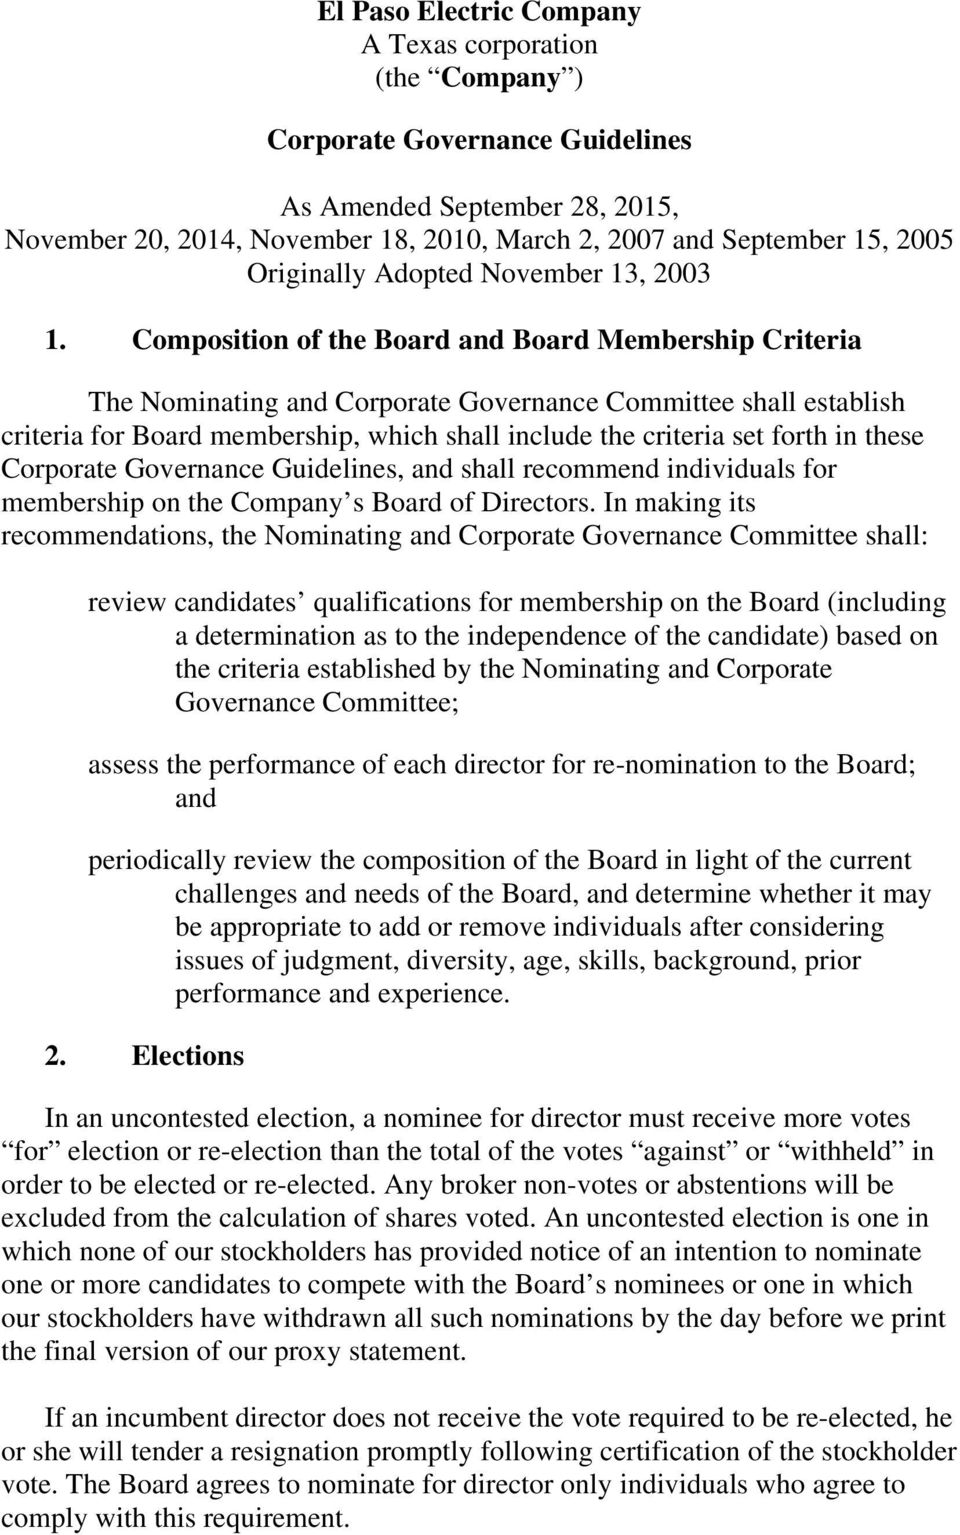 Composition of the Board and Board Membership Criteria The Nominating and Corporate Governance Committee shall establish criteria for Board membership, which shall include the criteria set forth in